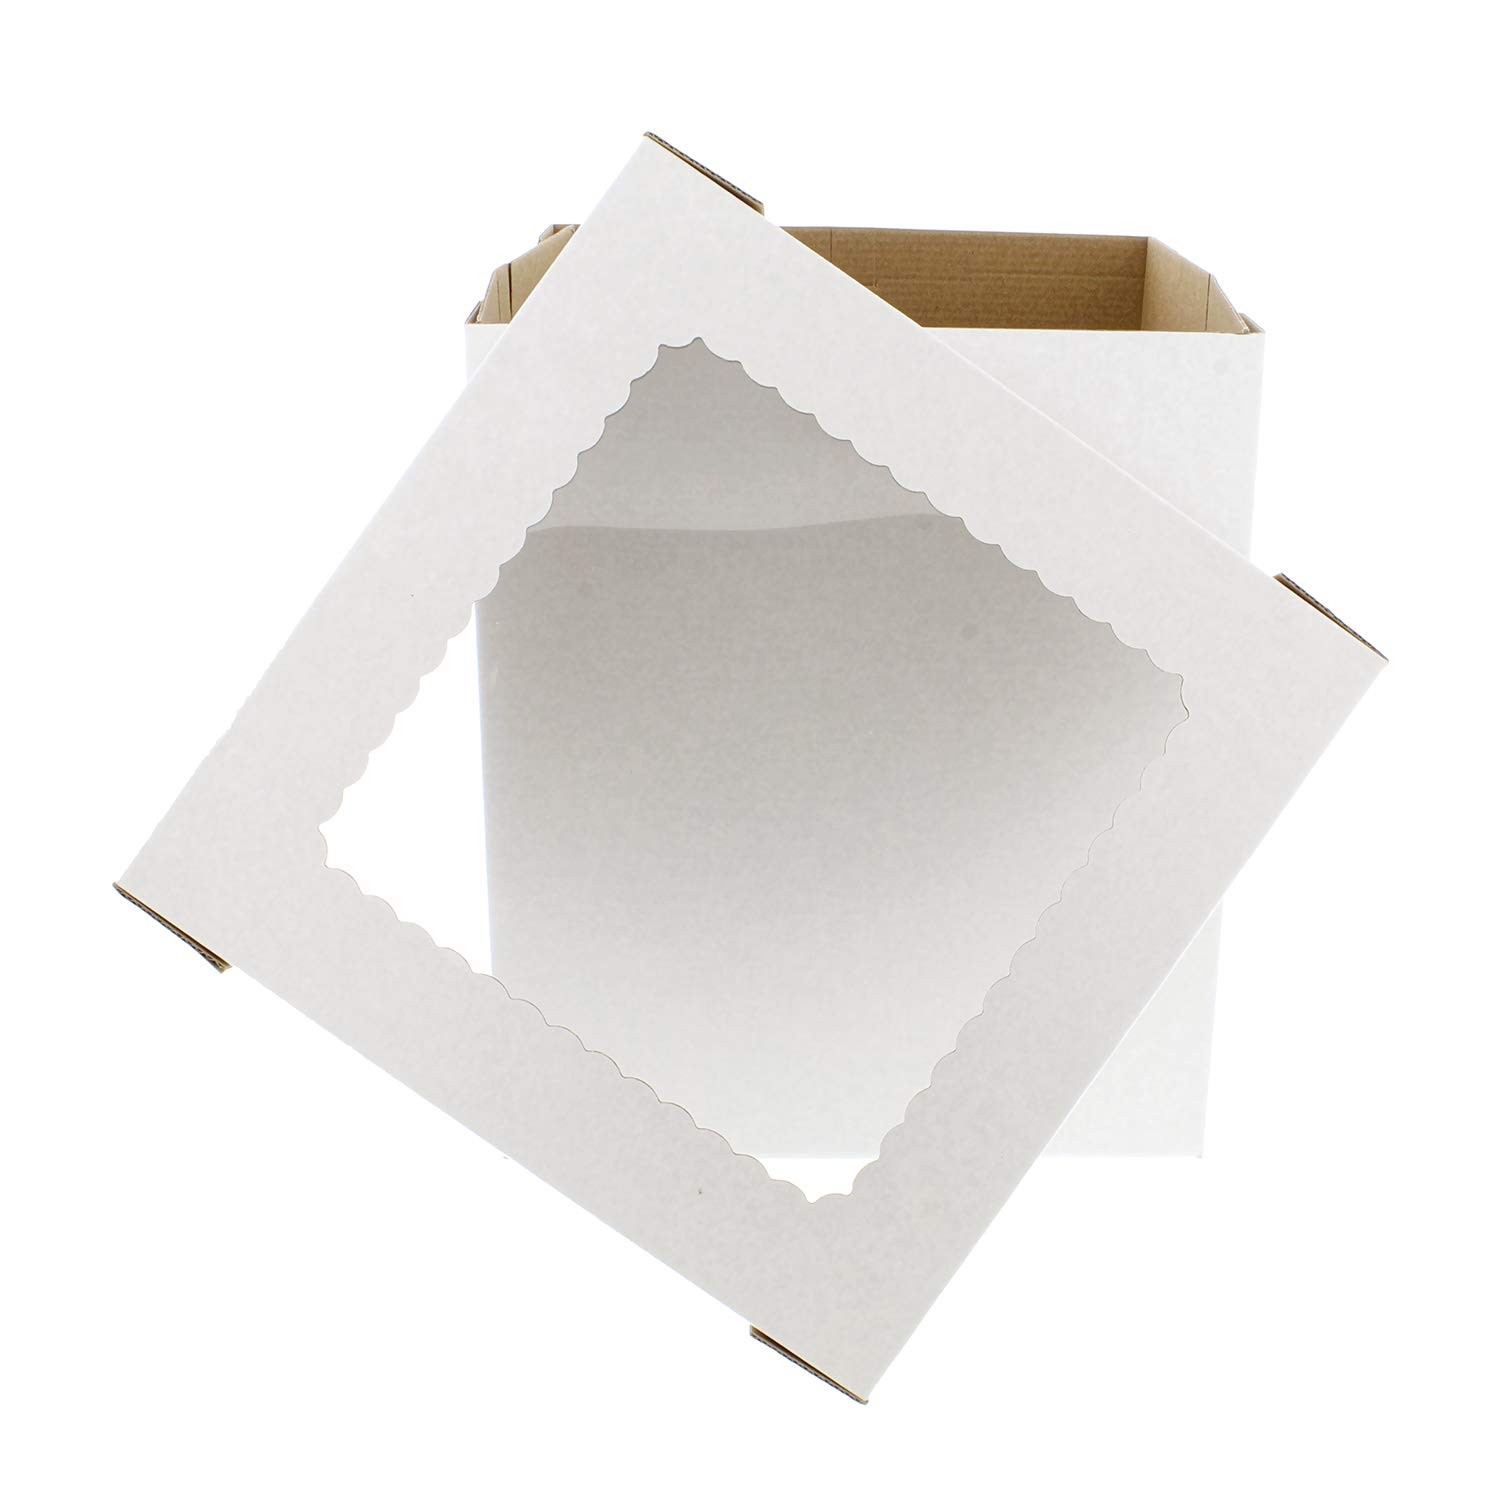 SpecialT Cake Boxes with Window 25pk 12'' x 12'' x 8'' Inch White Bakery Boxes, Disposable Cake Containers, Dessert Boxes by SpecialT (Image #6)